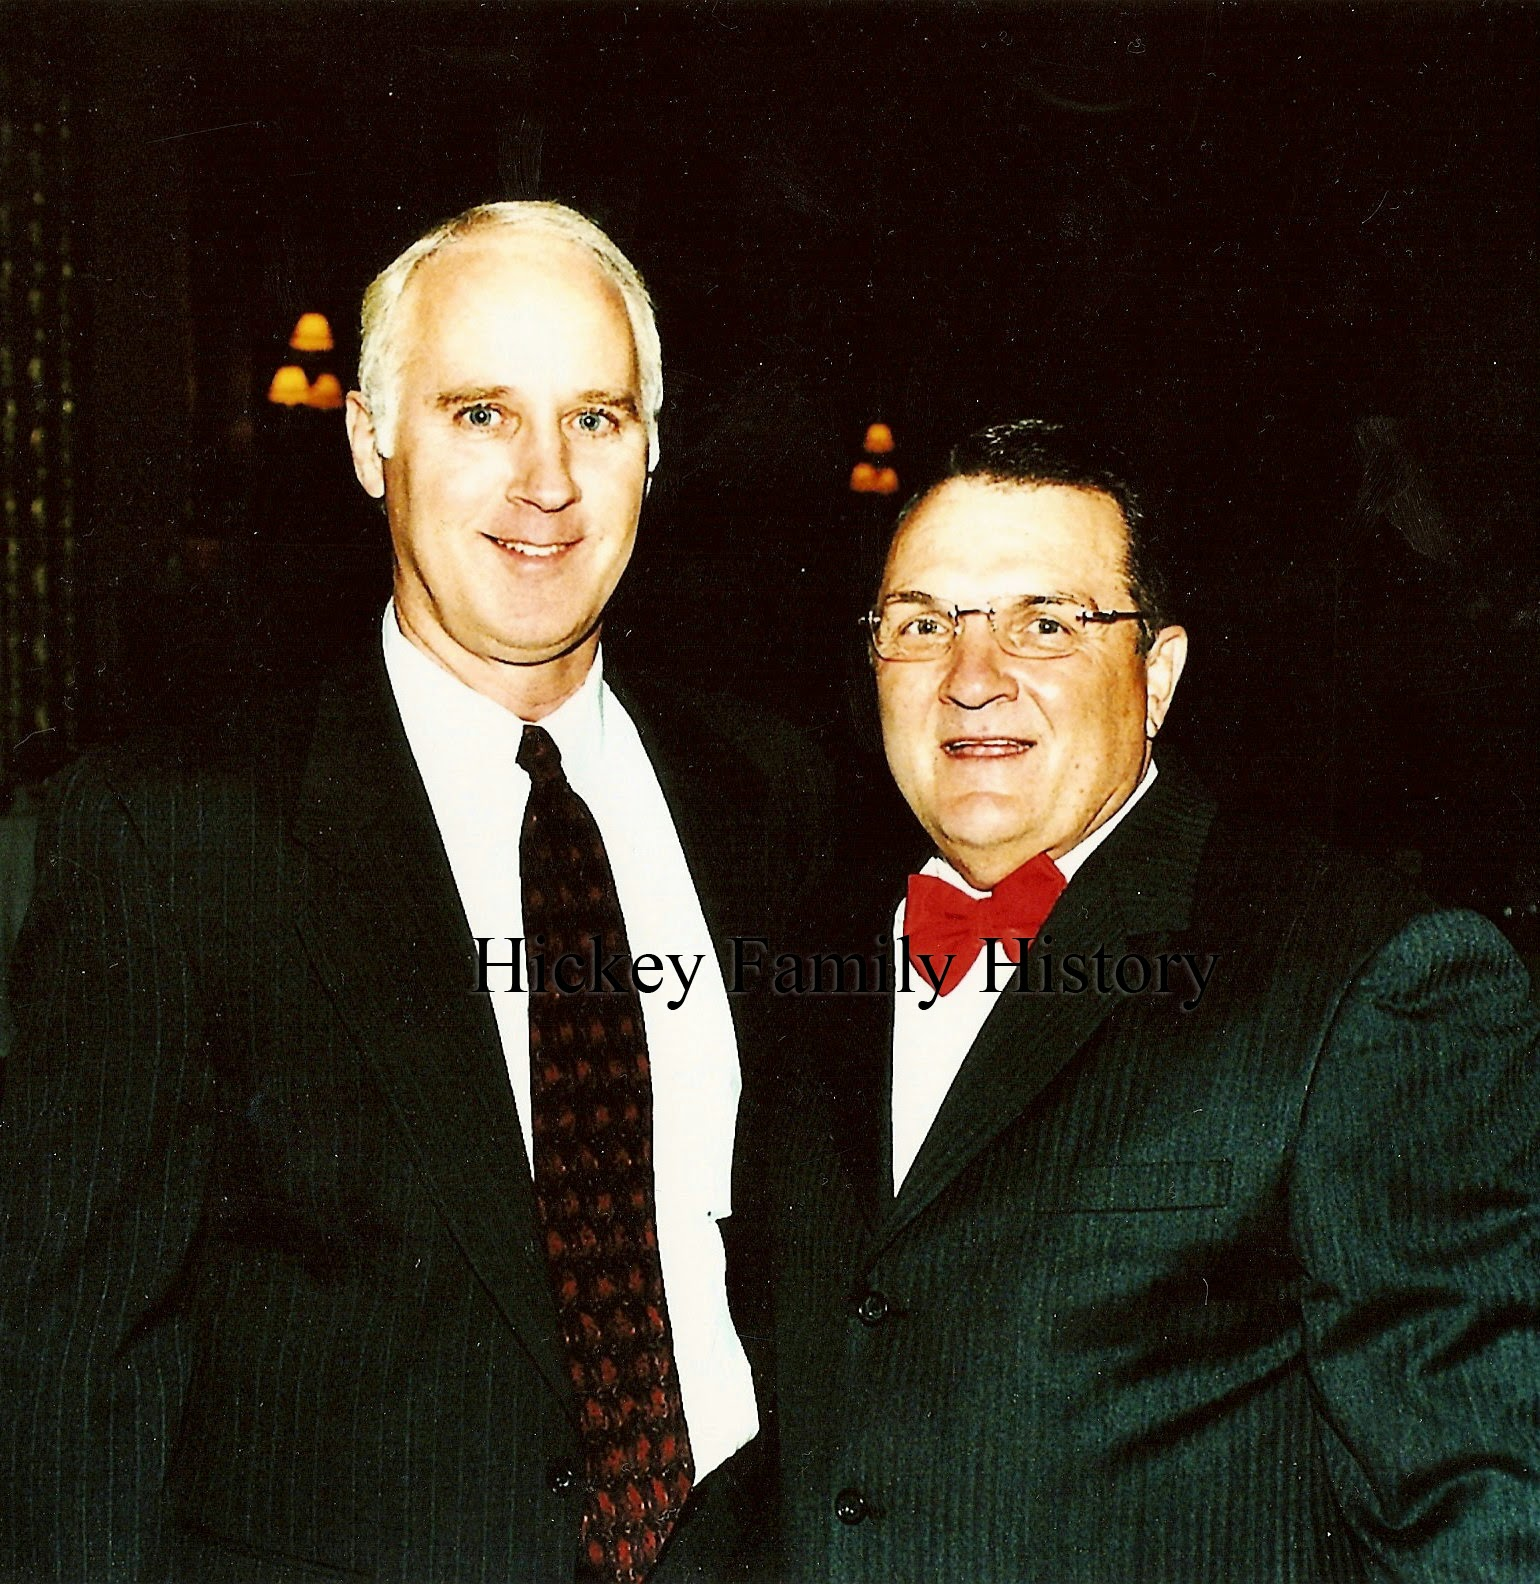 """8 Nov. 1975: The Sarb / Hickey Family's Role in the """"Rudy ..."""